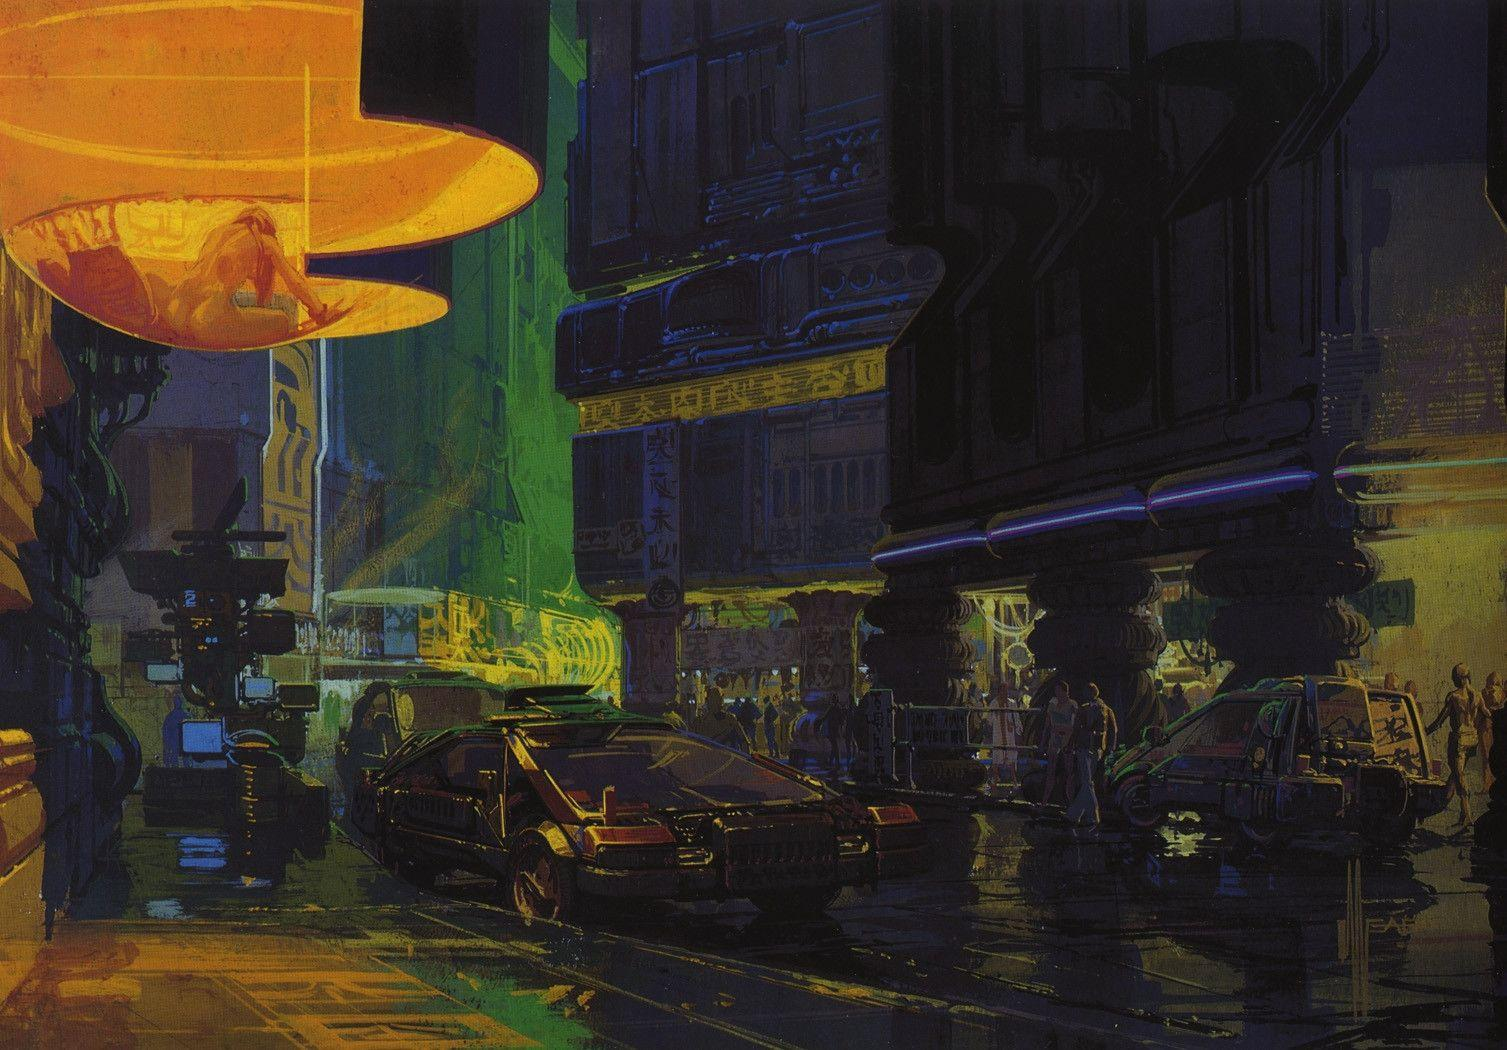 Blade Runner Wallpapers galore!